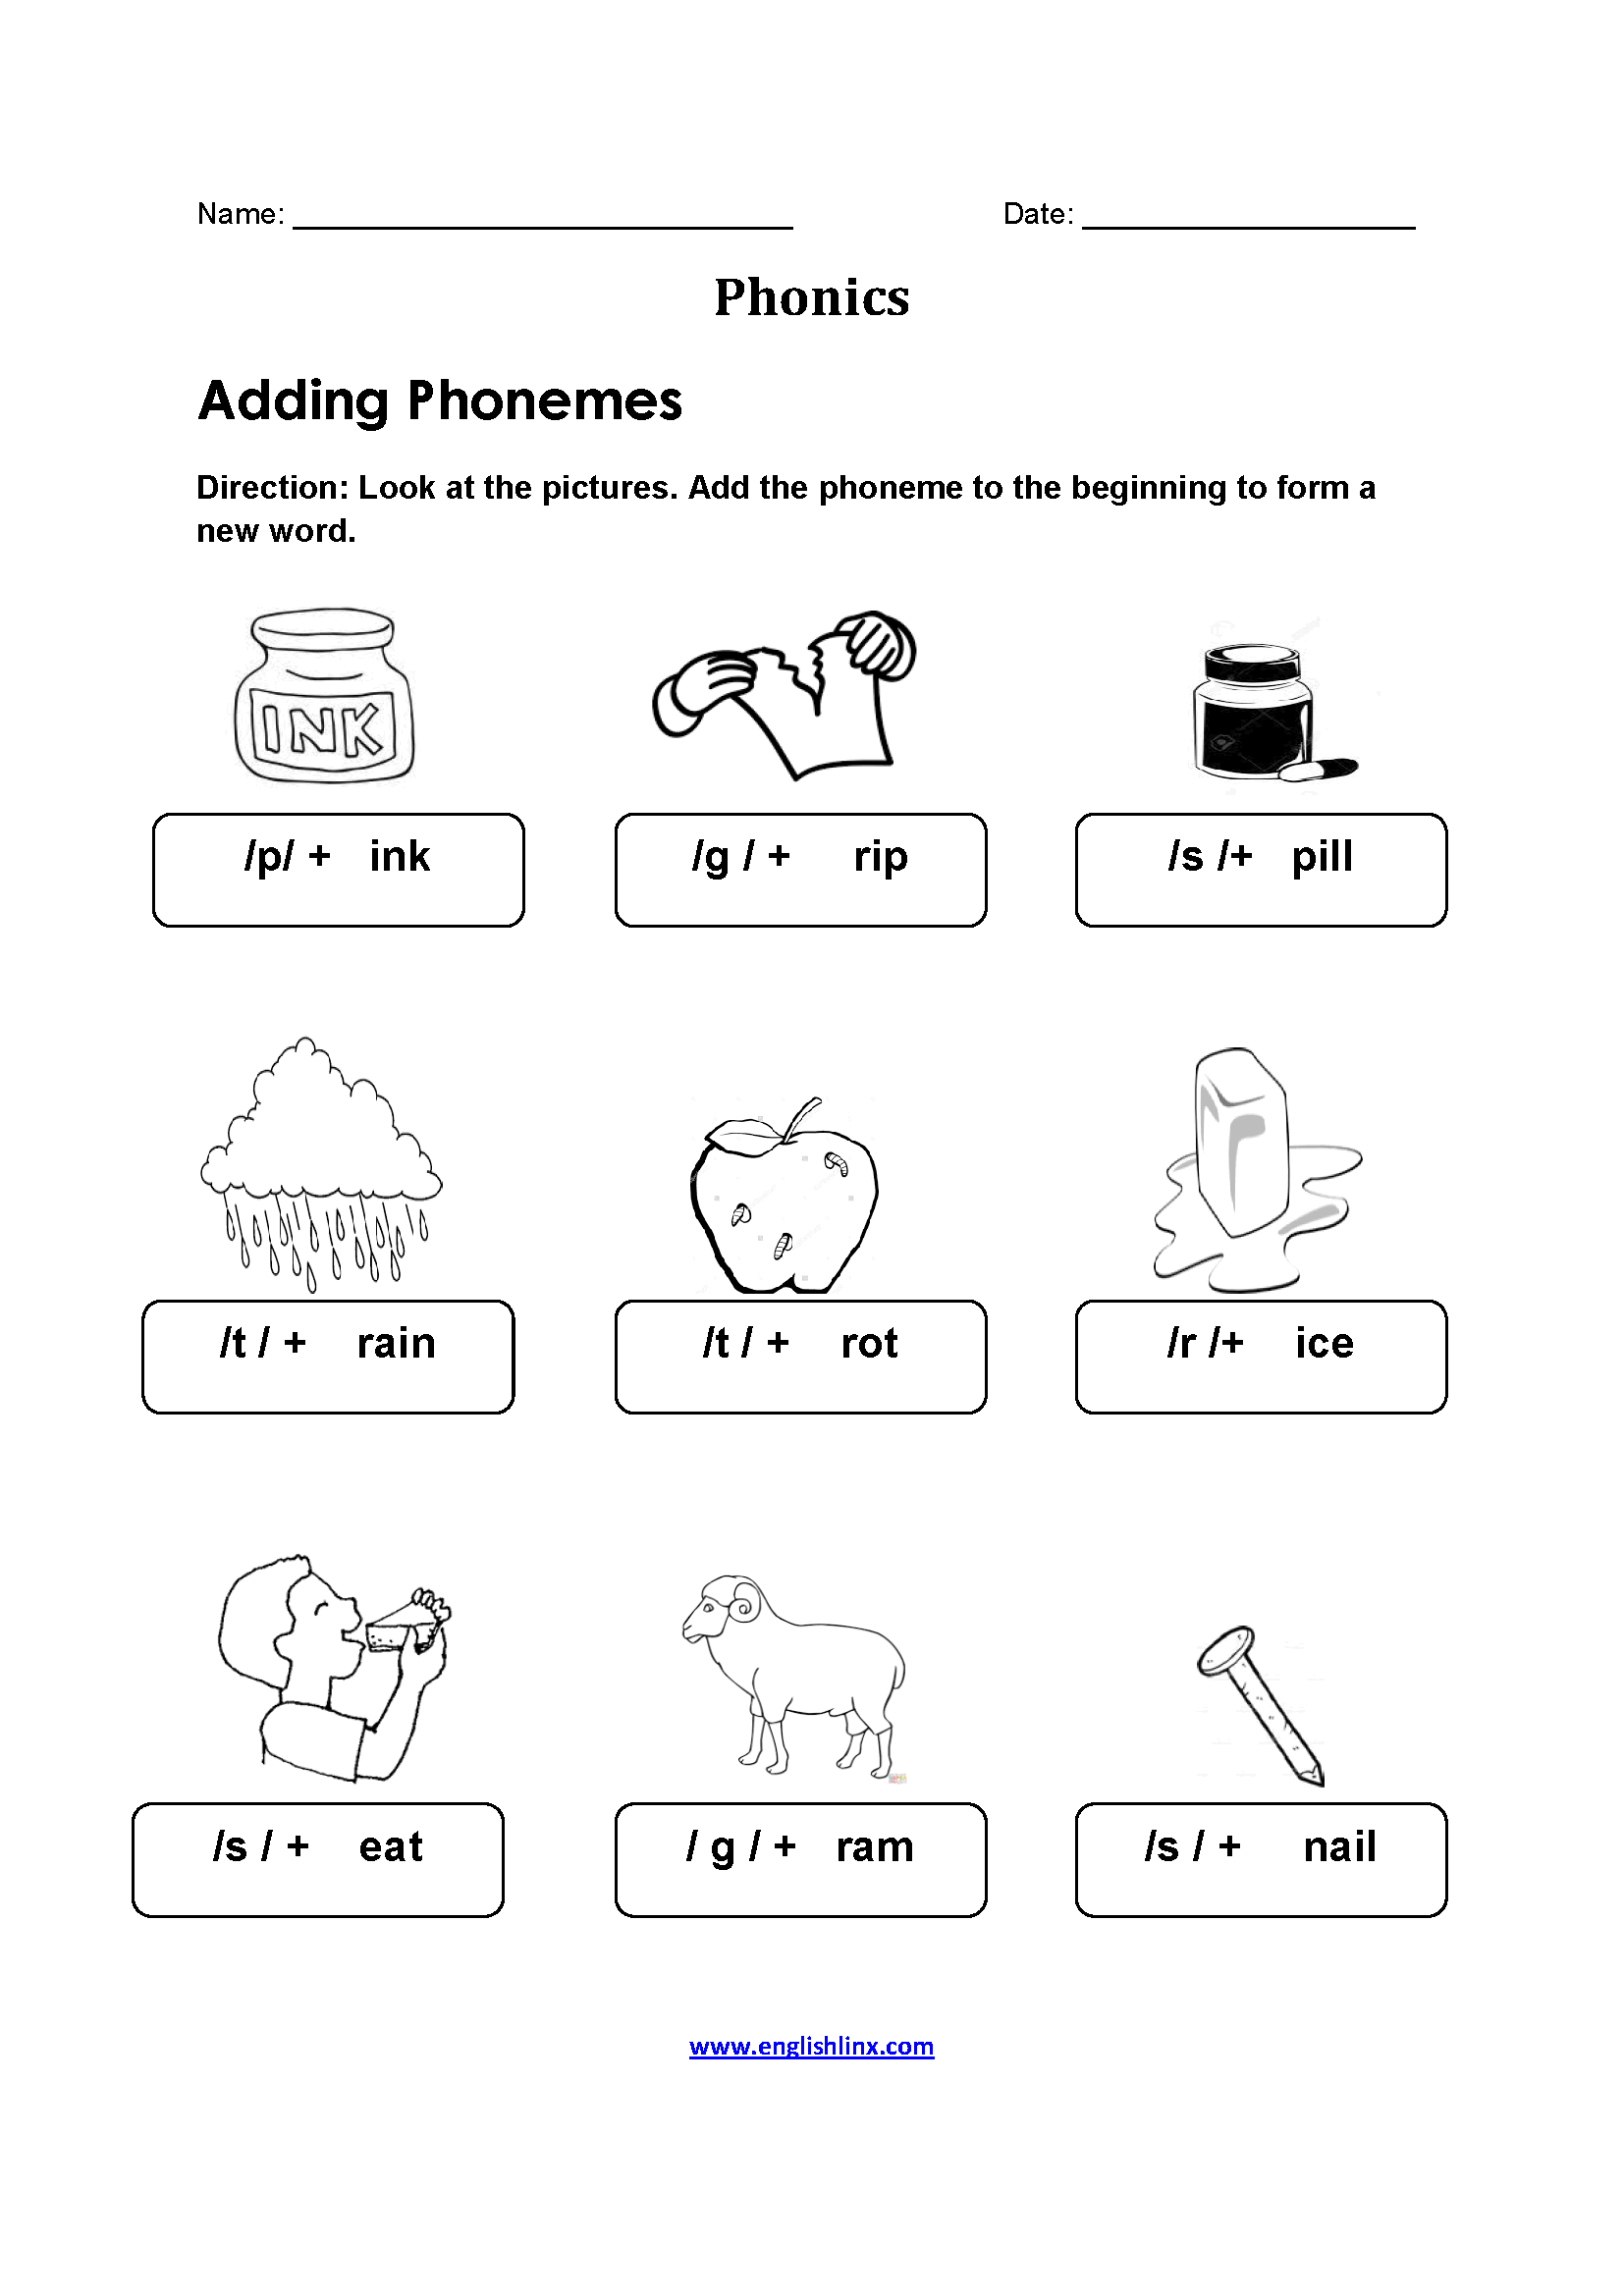 Adding Phonemes Pictures Phonics Worksheets